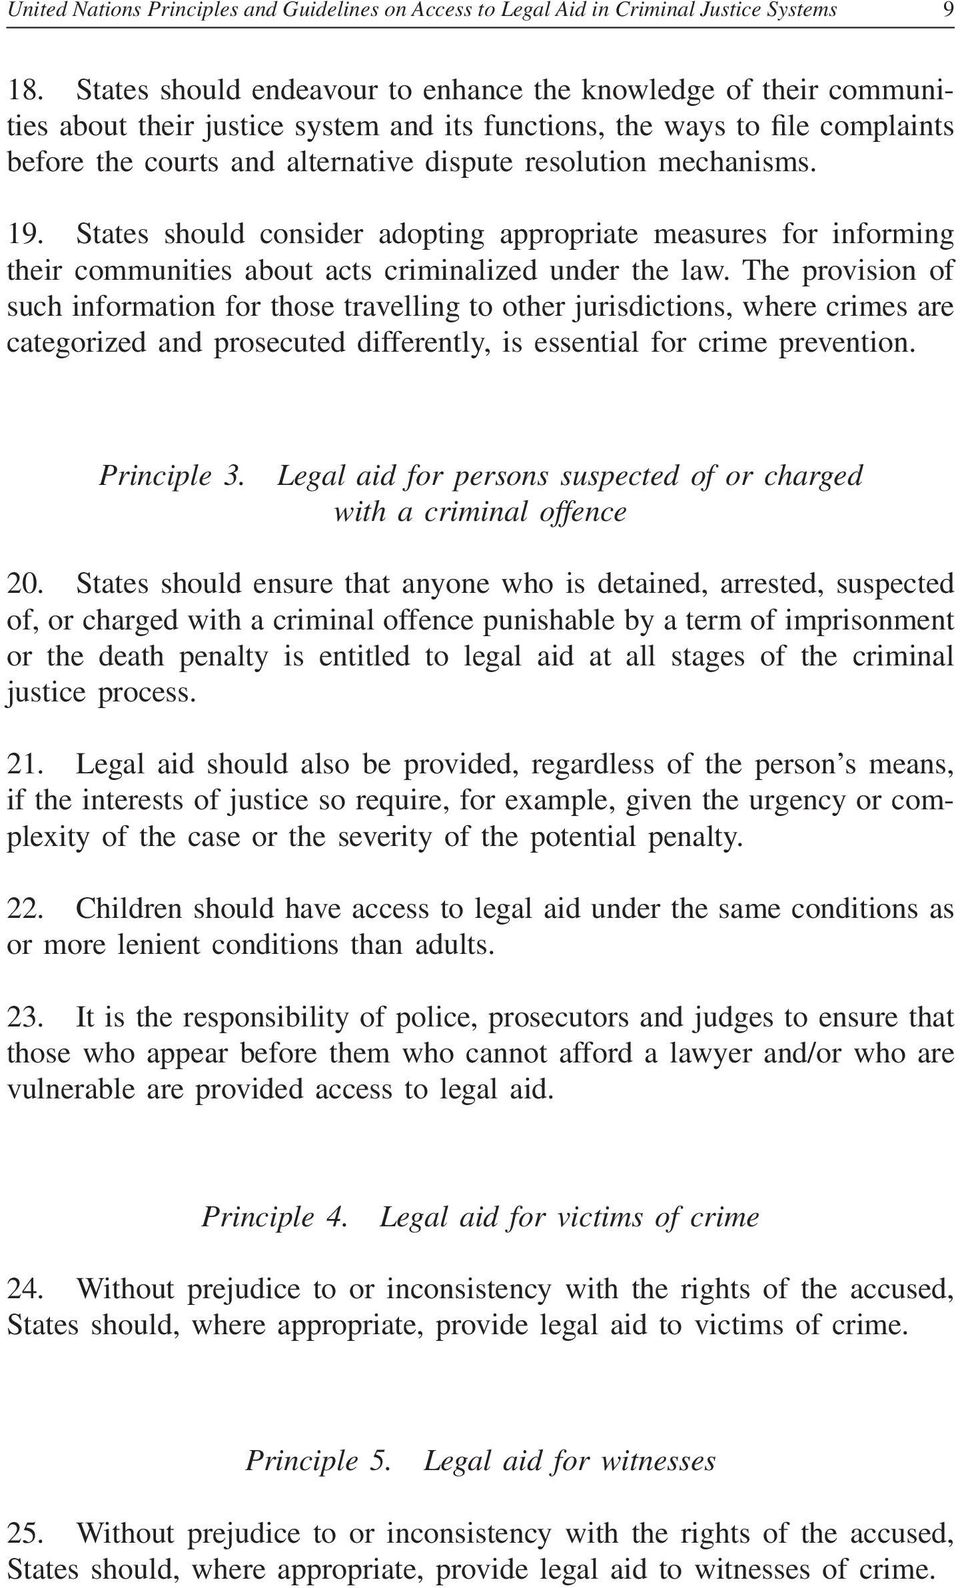 mechanisms. 19. States should consider adopting appropriate measures for informing their communities about acts criminalized under the law.